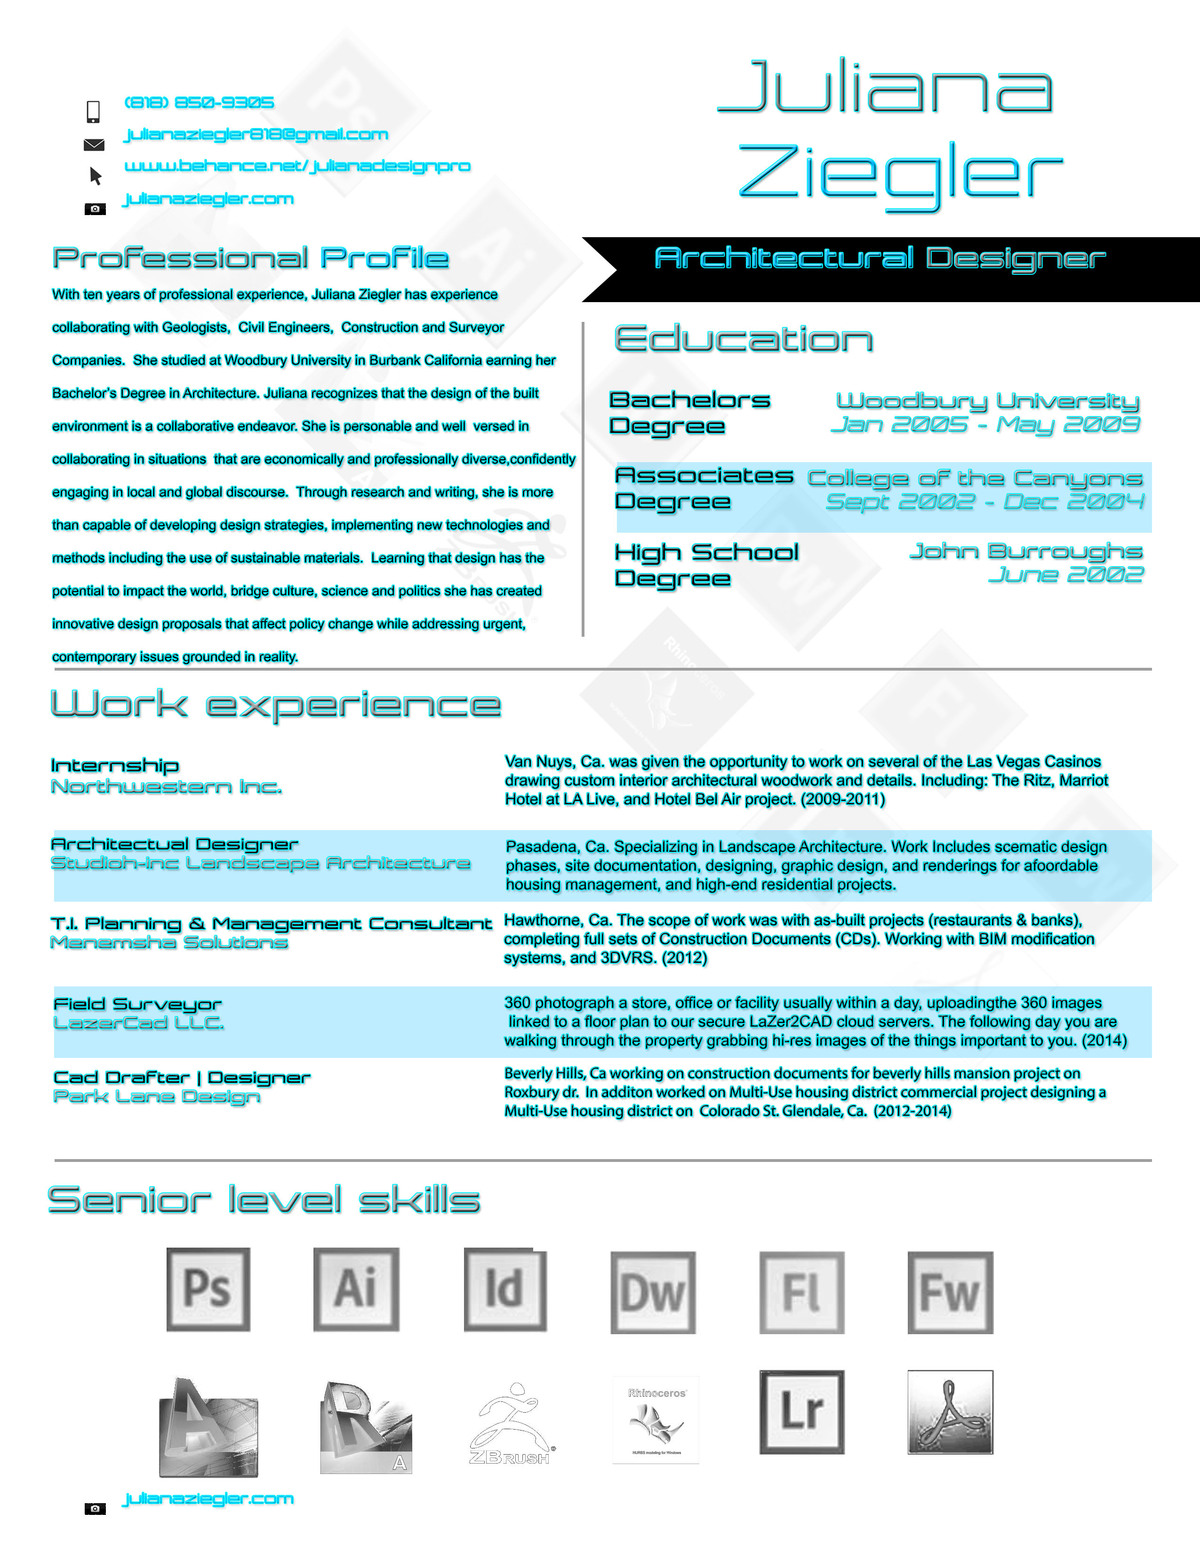 juliana resume architectural designer 2014 juliana ziegler